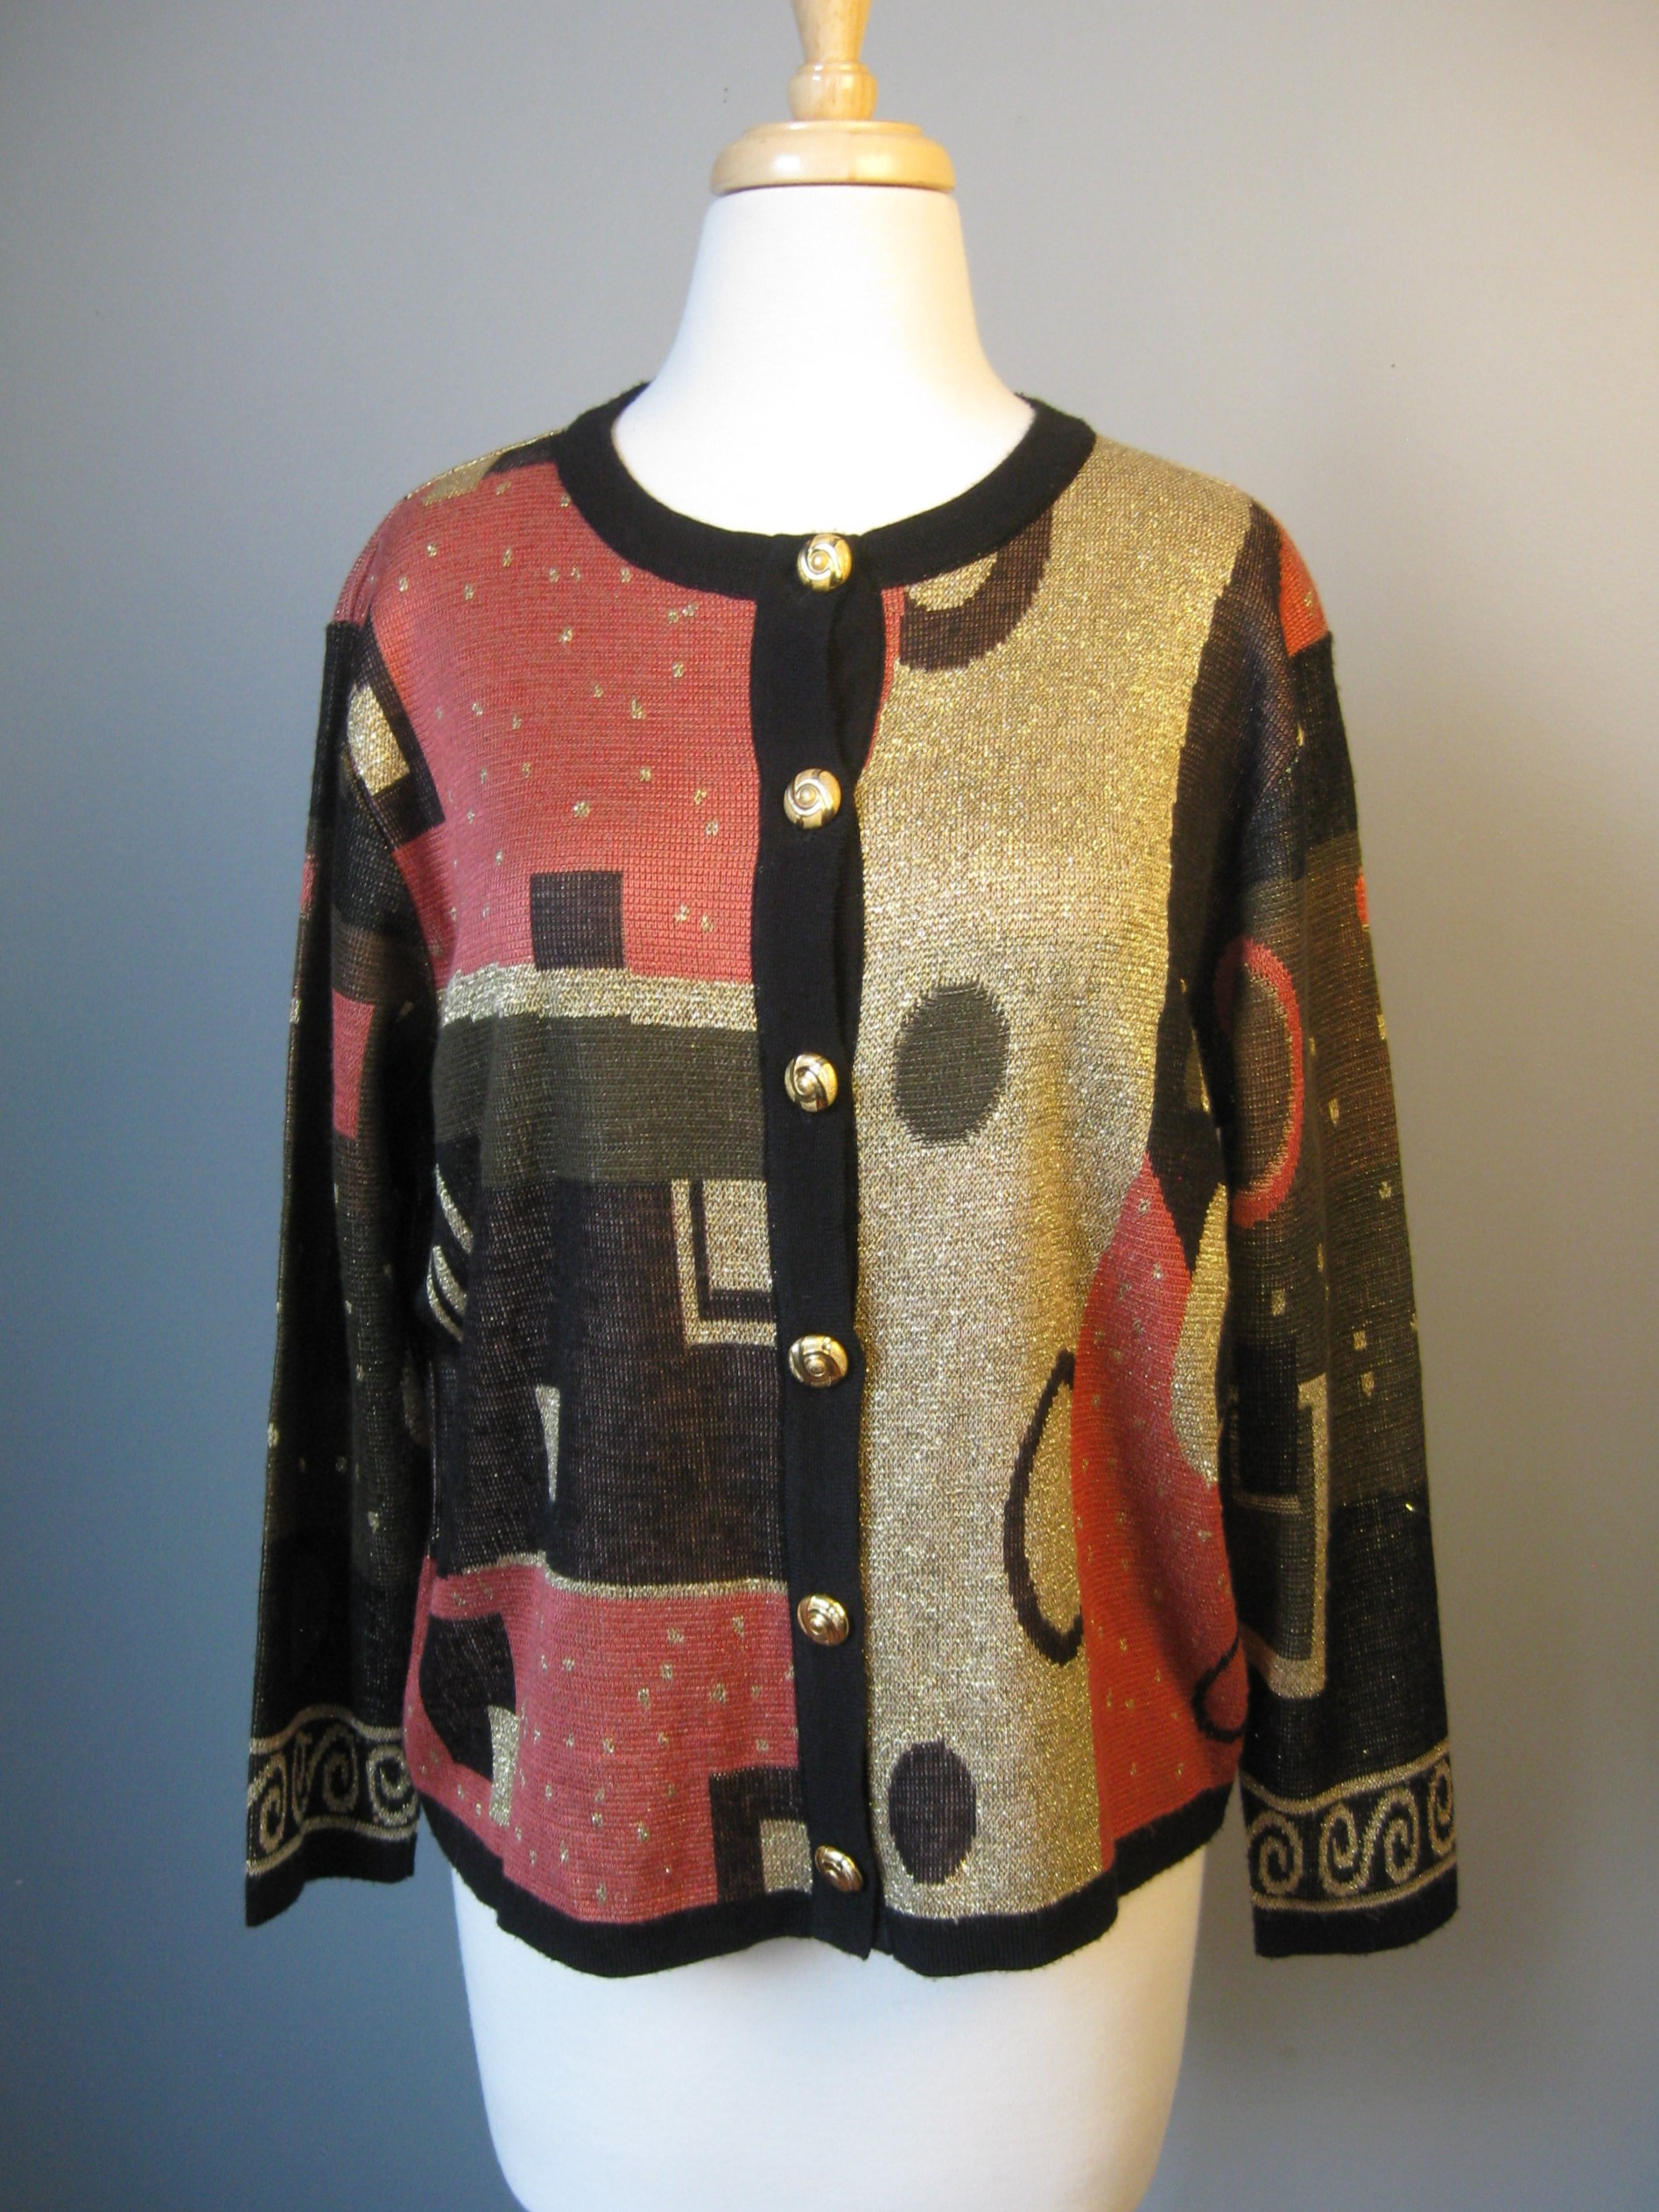 Subtly shimmery cardigan with gold metal buttons and abstract cubist pattern<br /> 100% acrylic<br /> Should fit medium to large<br /> armpit to armpit: 21in<br /> length: 20 1/2in<br /> <br /> excellent pre-owned condition<br /> thanks for looking!<br /> #6202